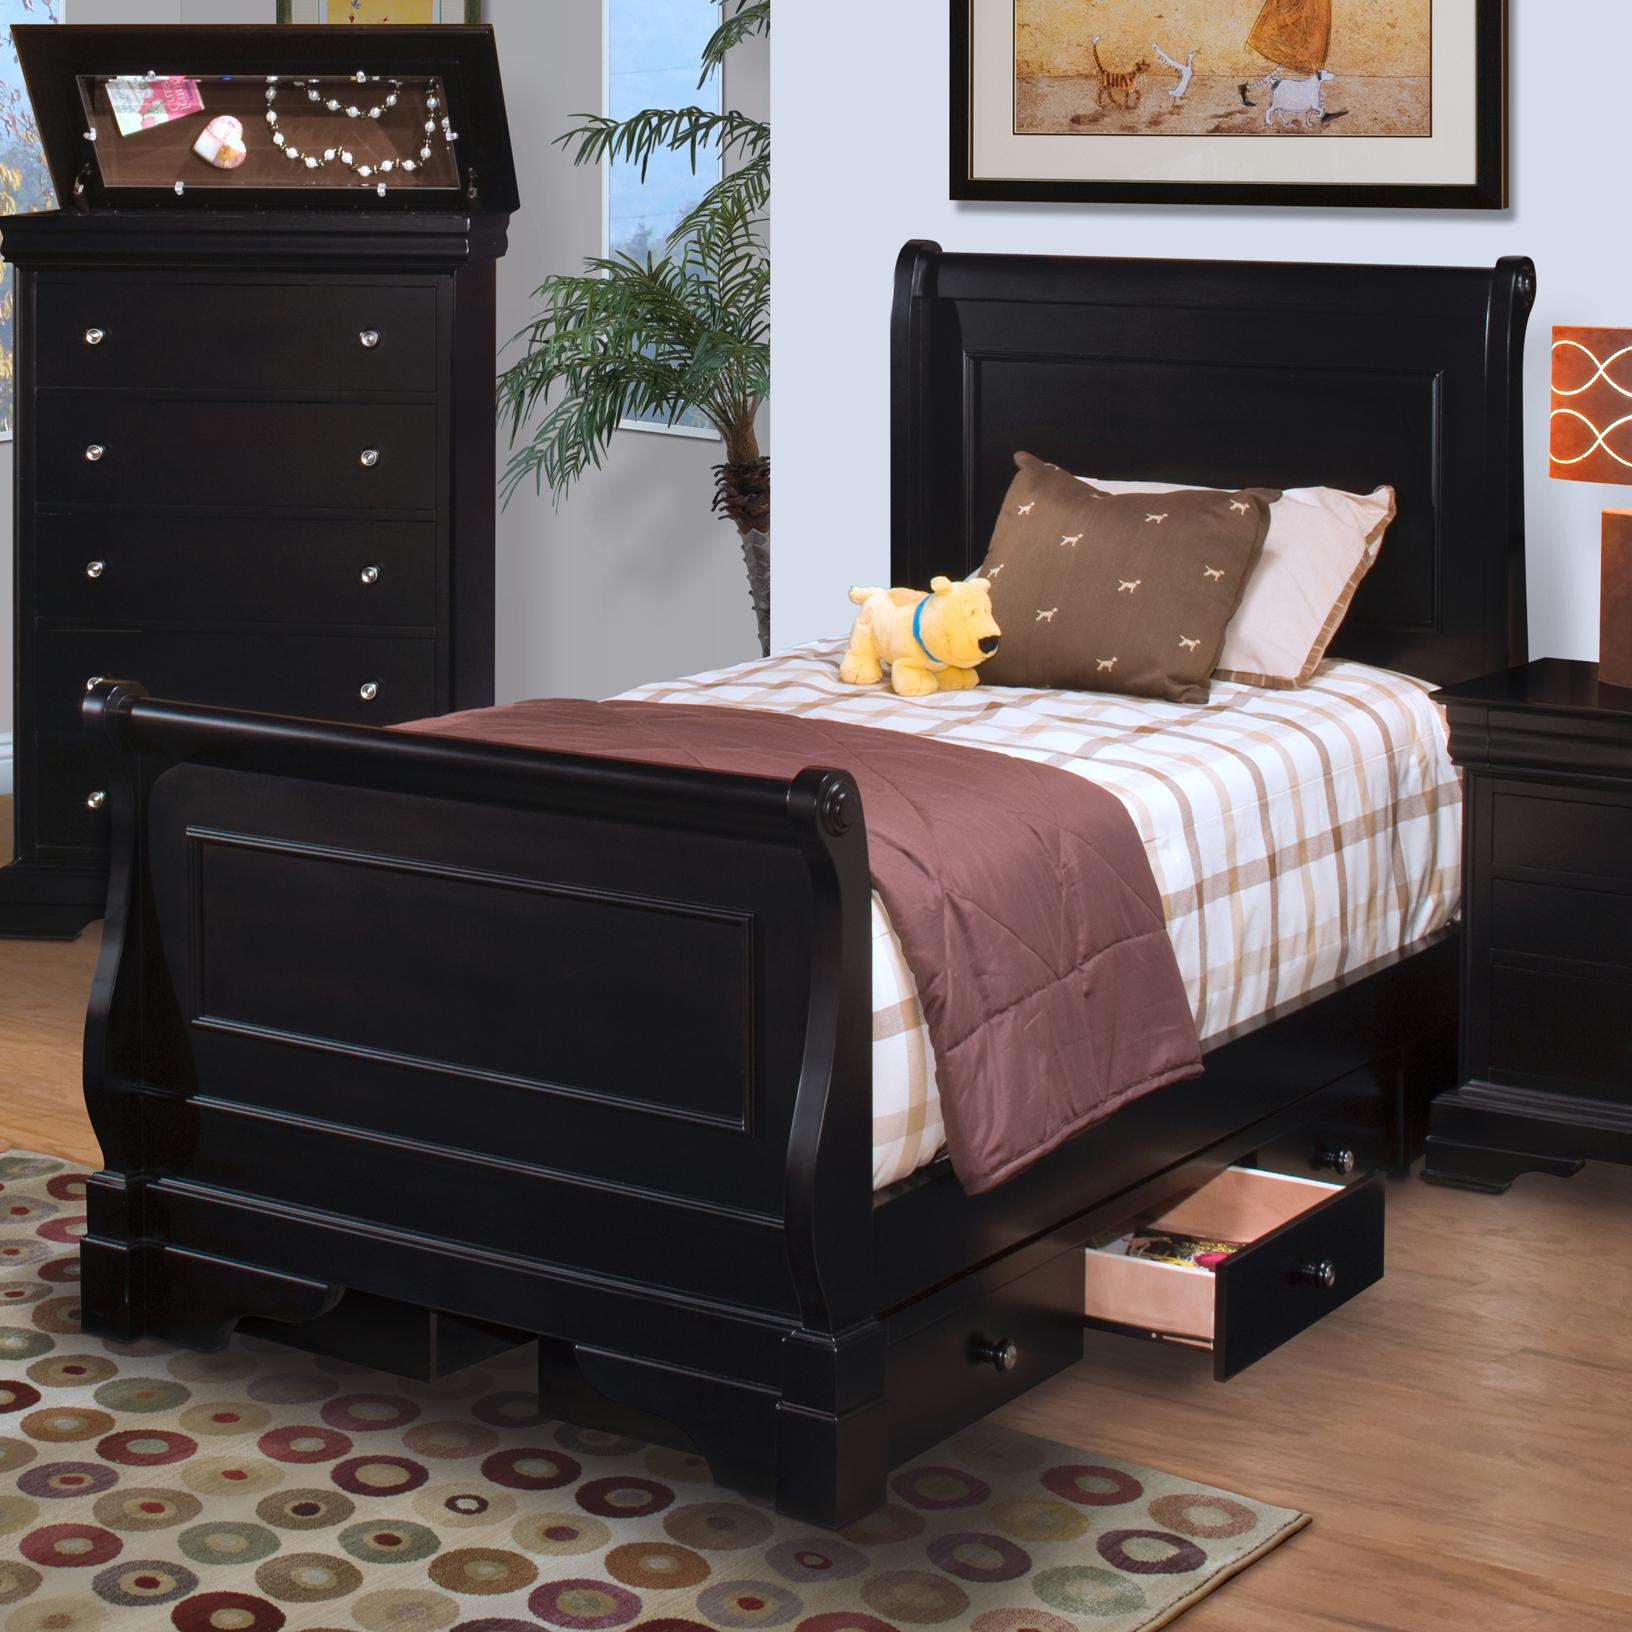 Belle rose sleigh bed shop for affordable home furniture for Affordable furniture alexandria louisiana